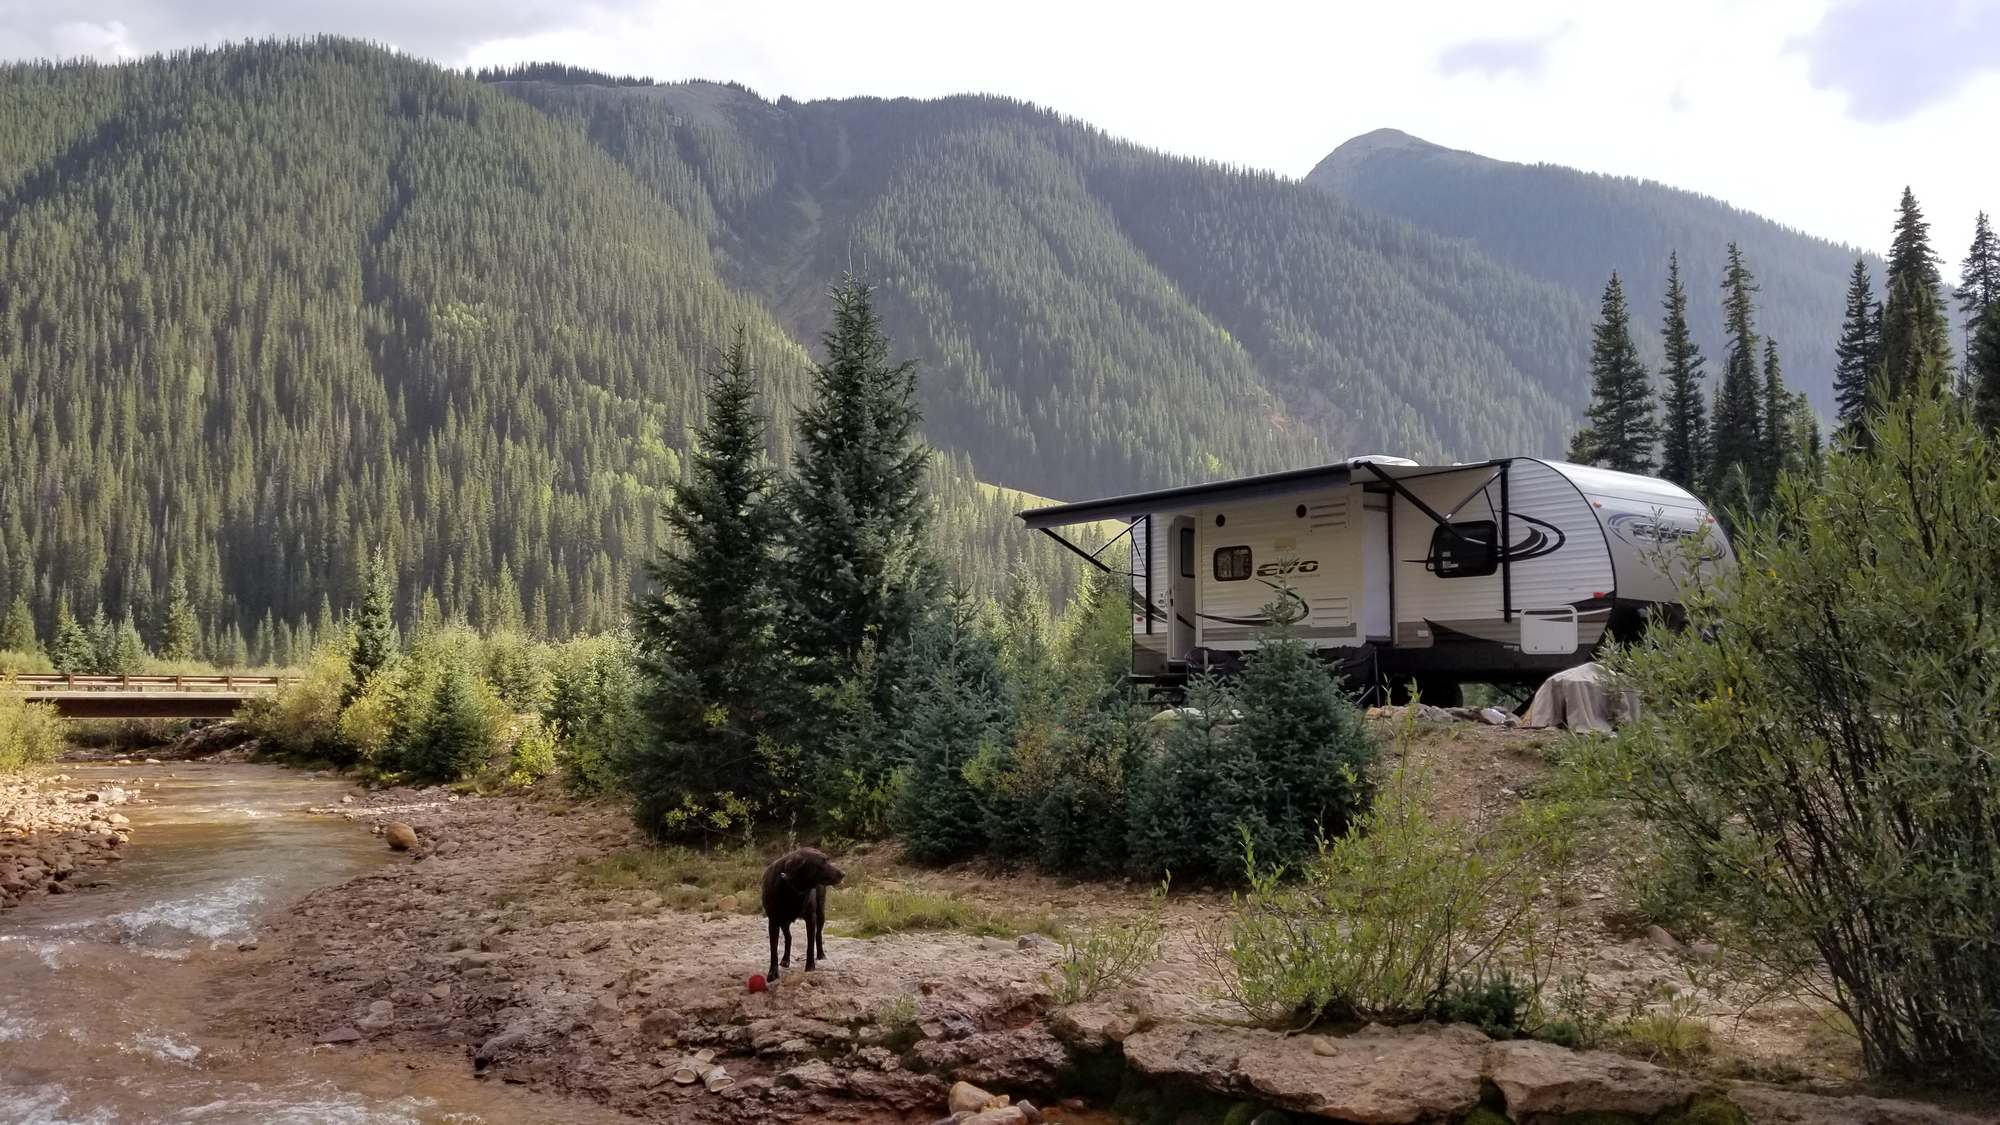 Our camp at Anvil Camping Area in Silverton, Colorado